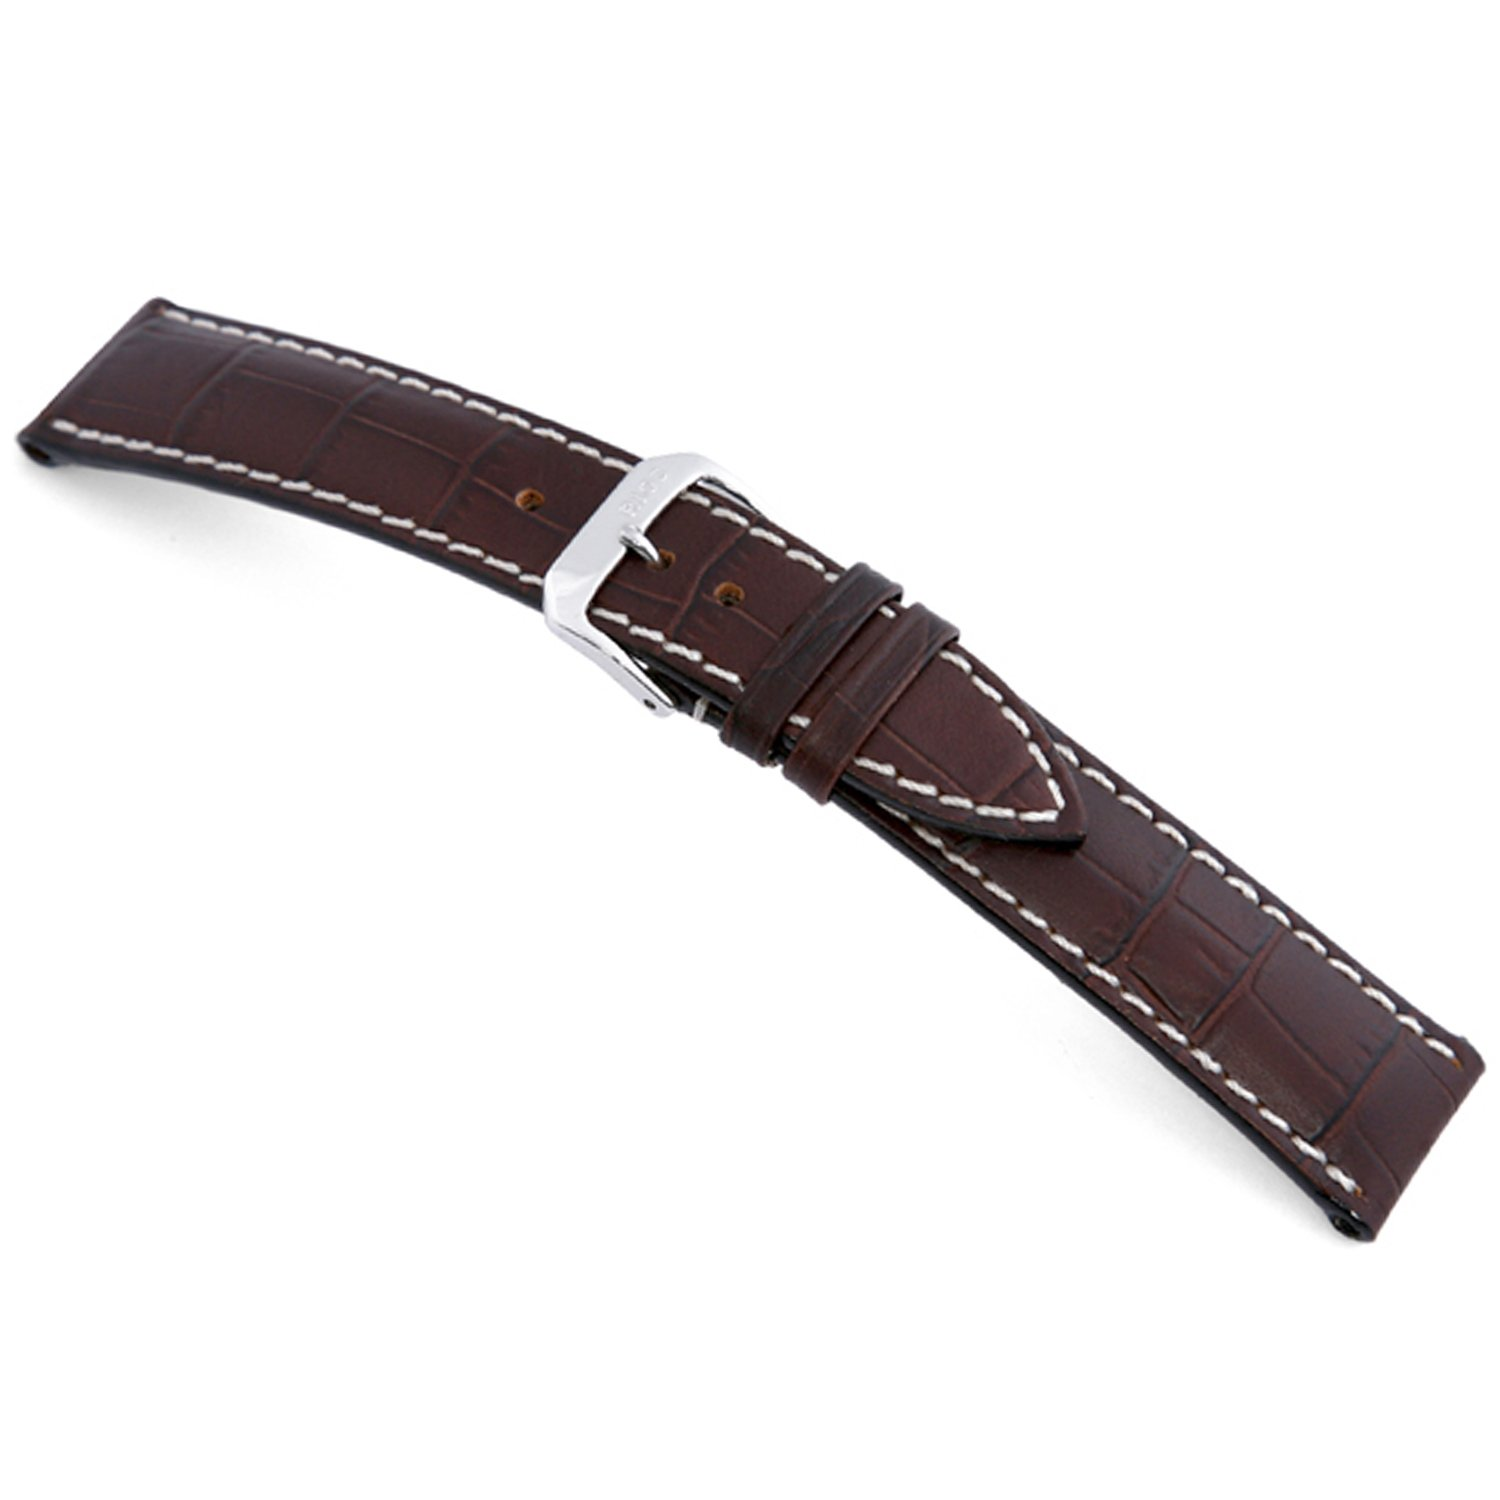 rios1931 New Orleans – 純正エンボスレザーWatch Band with Gator Print andホワイトステッチ 19mm (Standard) モカ 19mm (Standard)|モカ モカ 19mm (Standard) B0748KBK6R